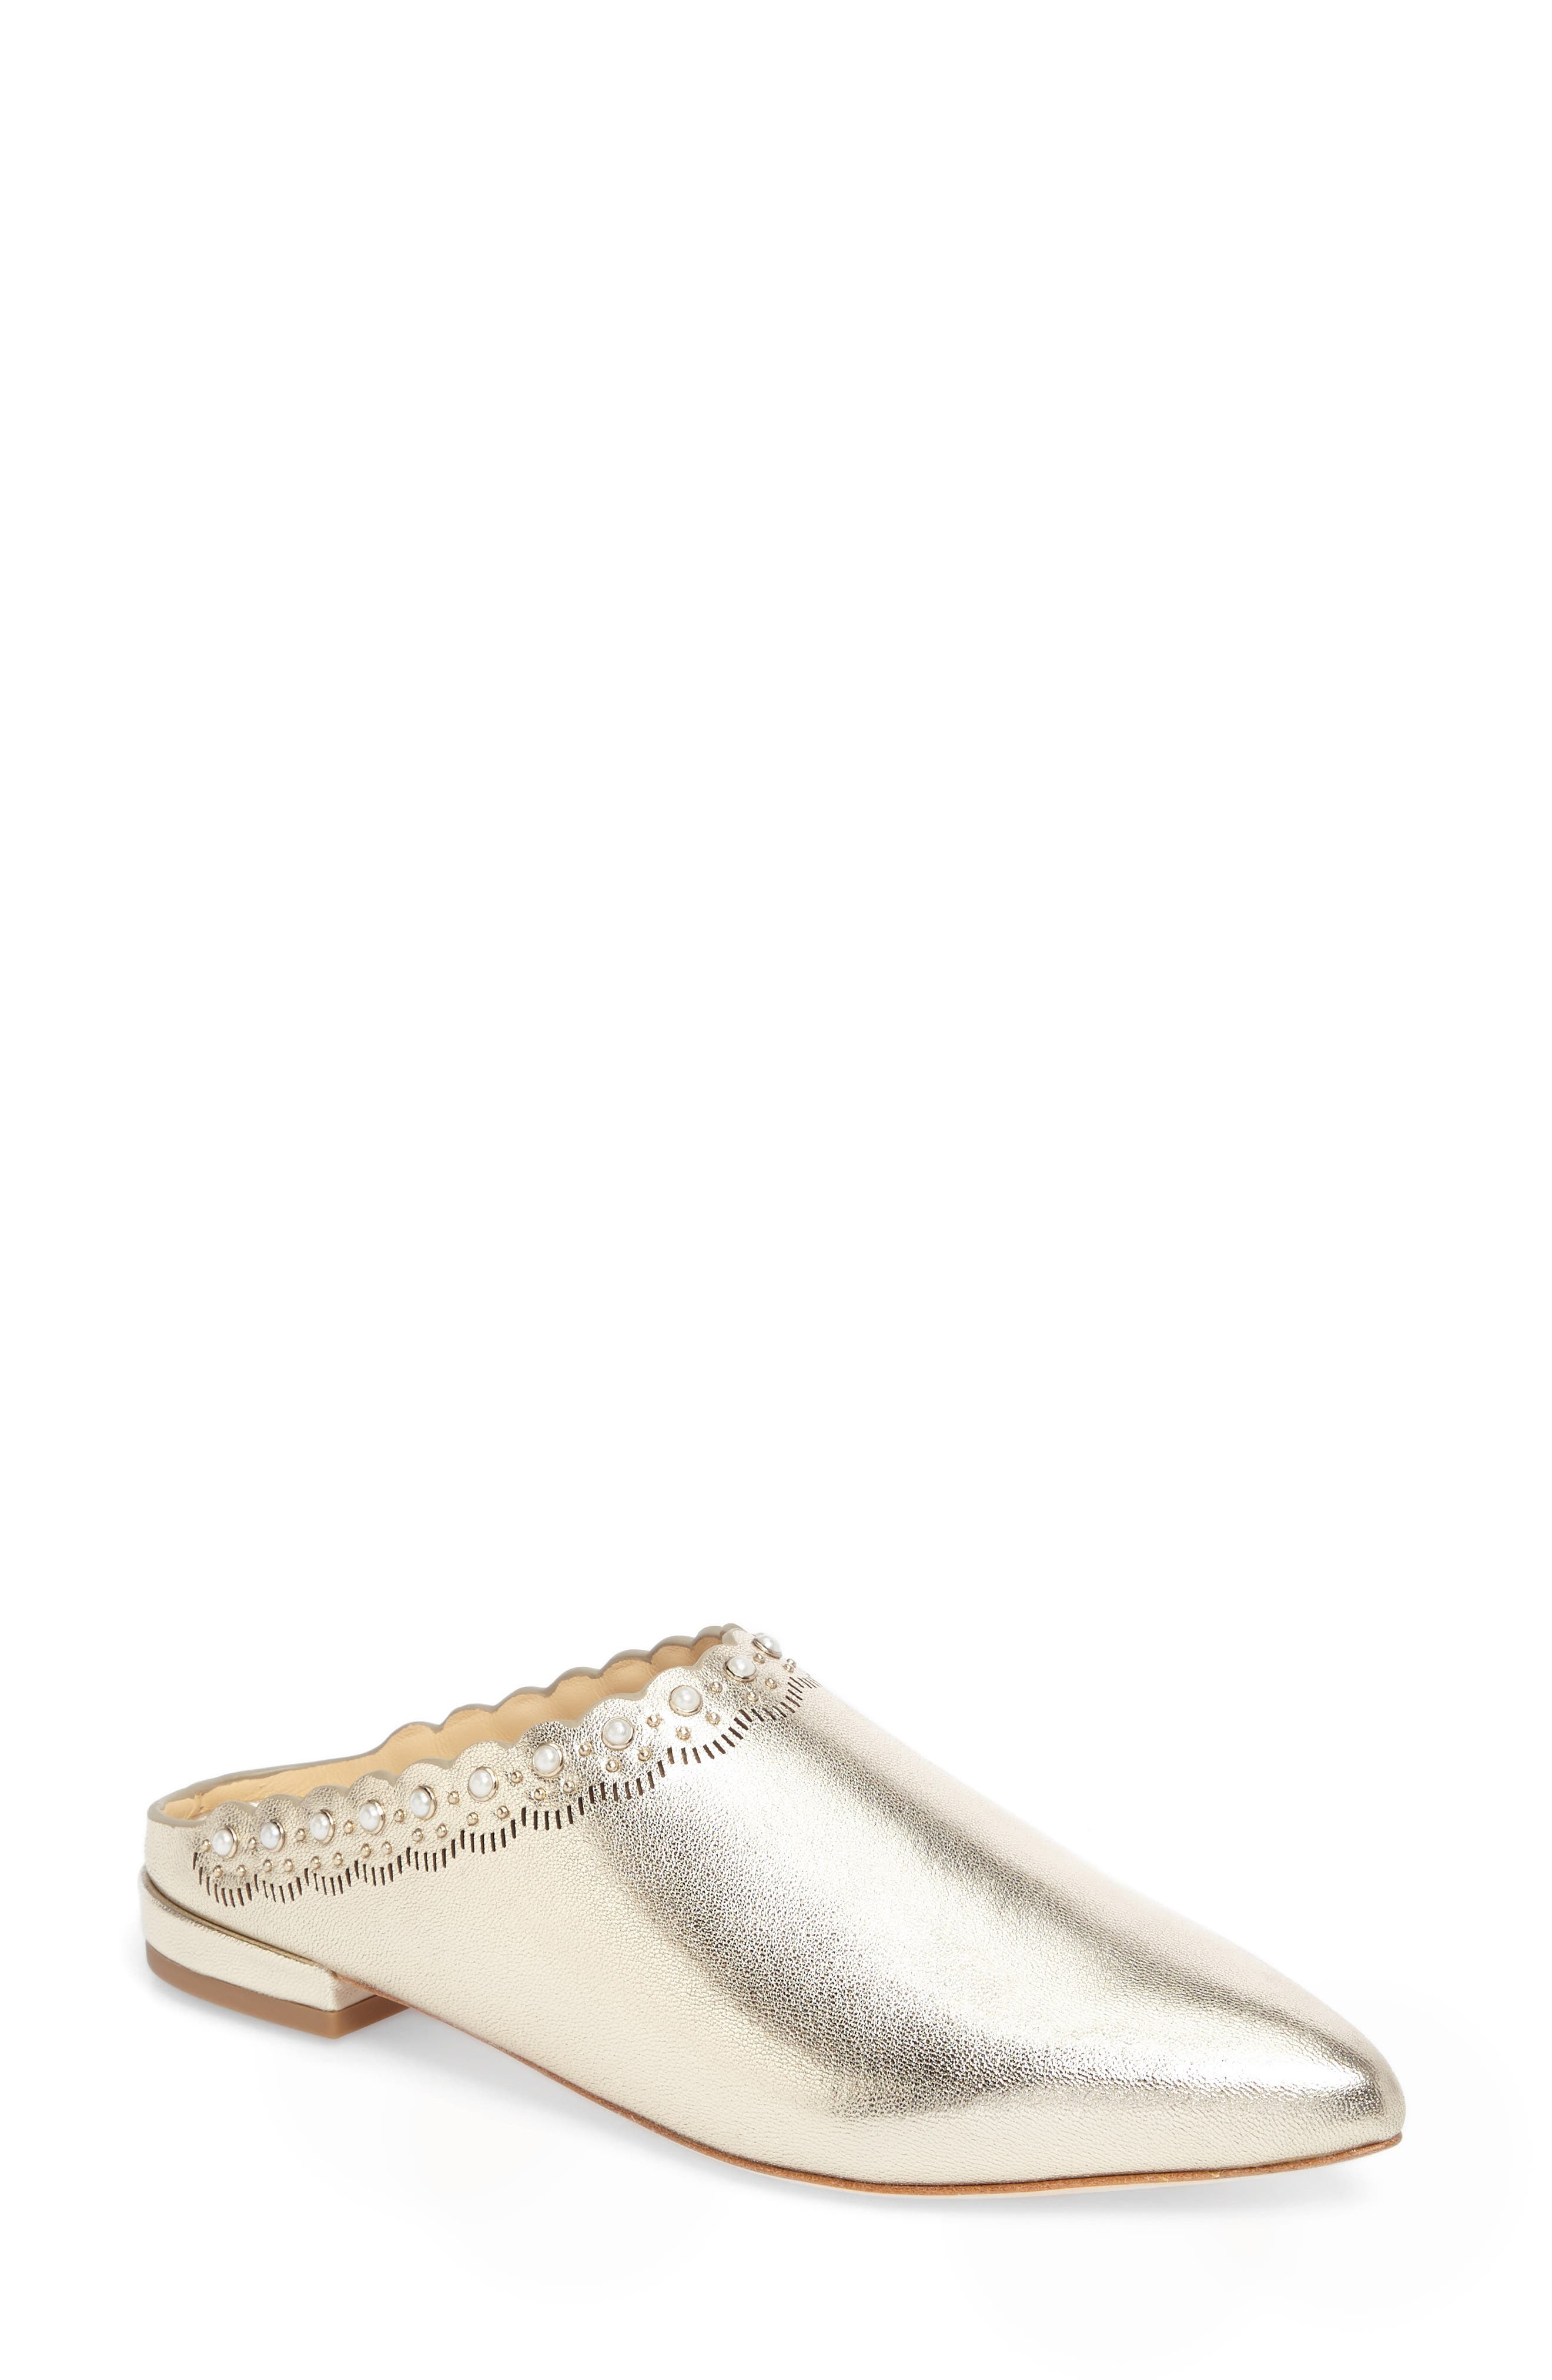 Giselle Mule,                             Main thumbnail 1, color,                             Champagne Leather